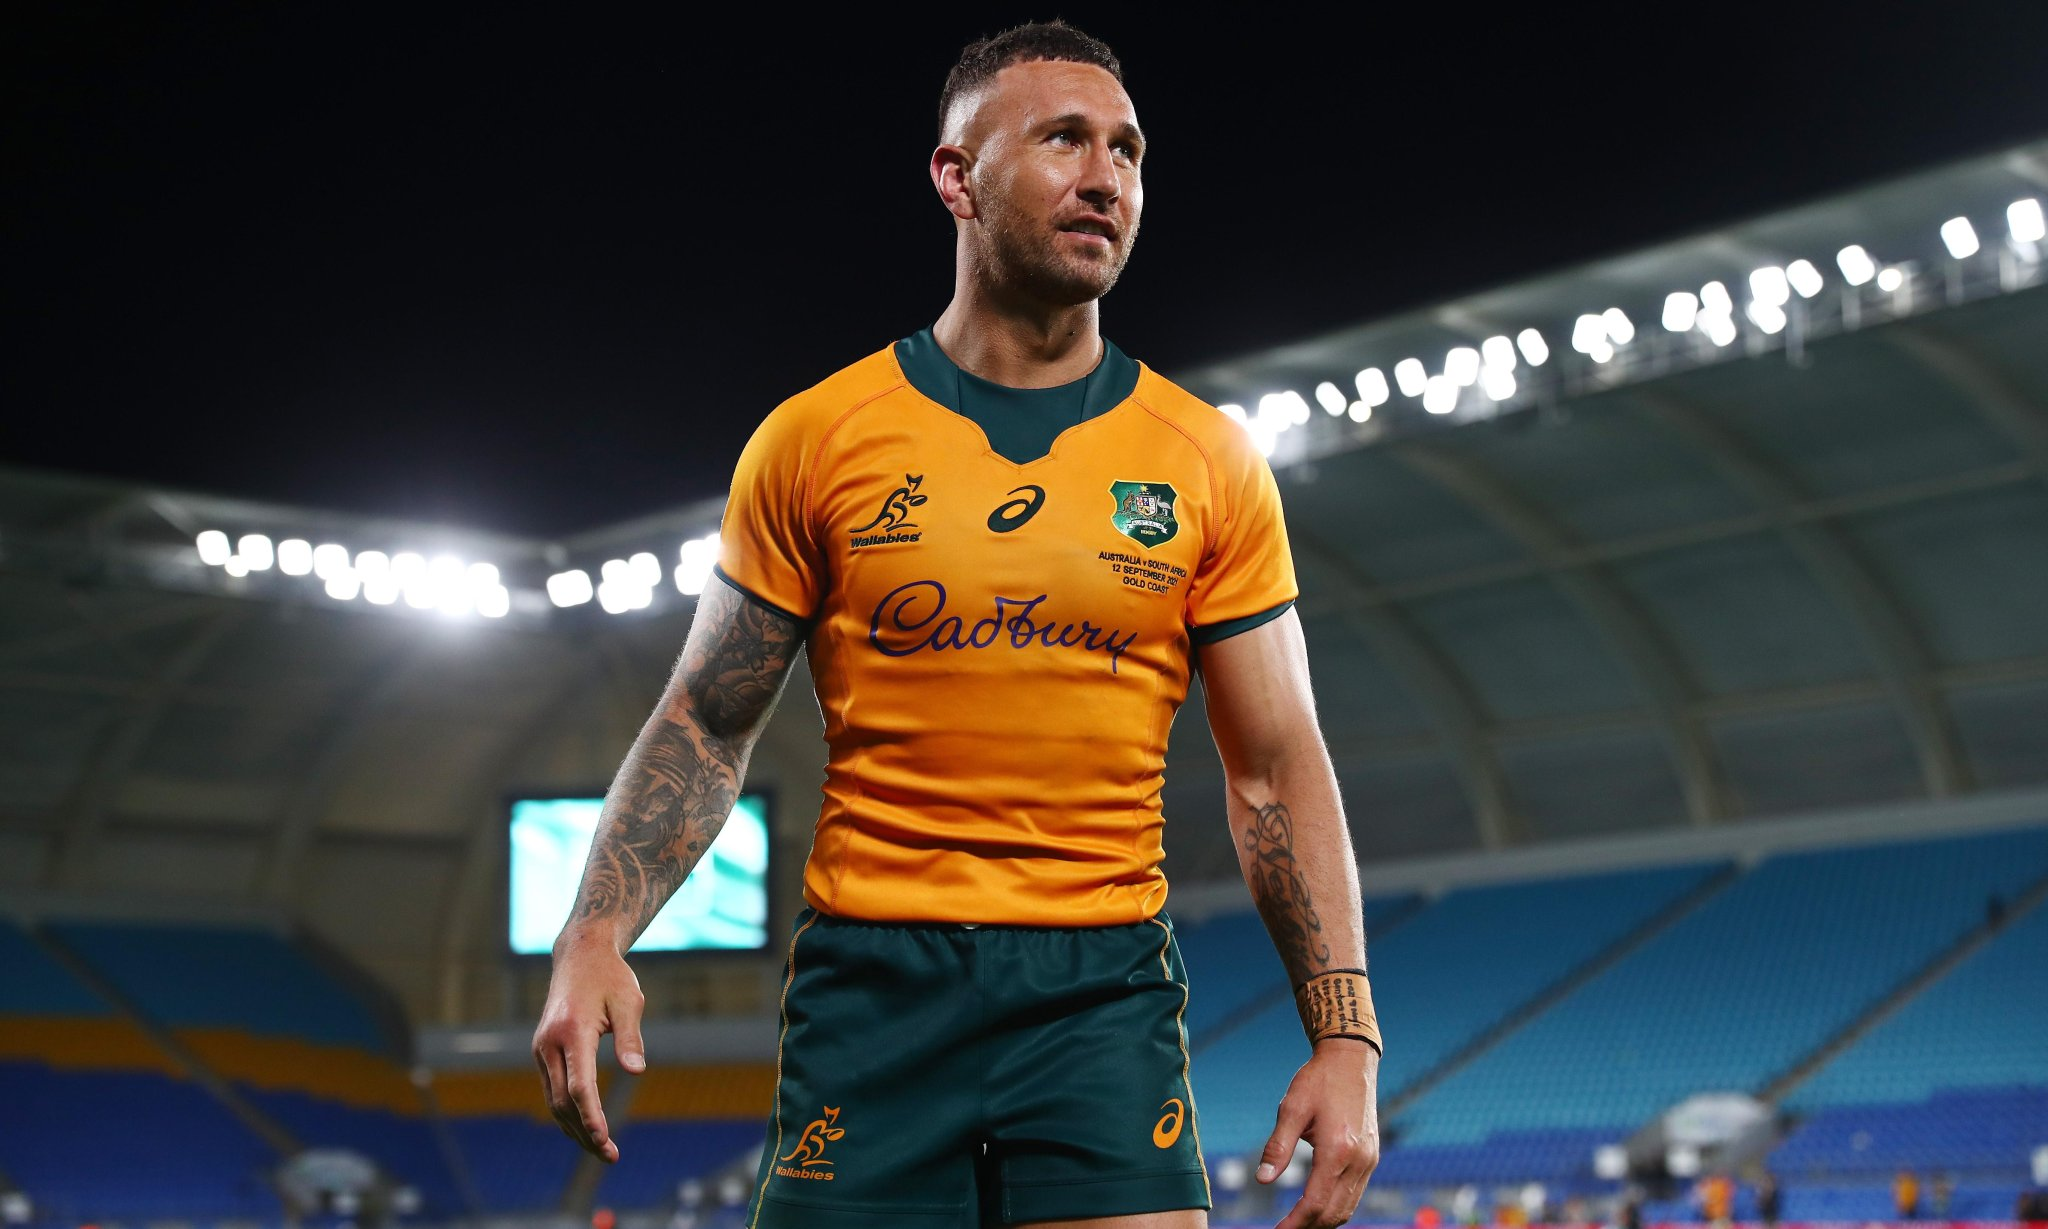 'Australian thing to do': Quade Cooper gets renewed backing in citizenship bid after Wallabies win | Australia rugby union team